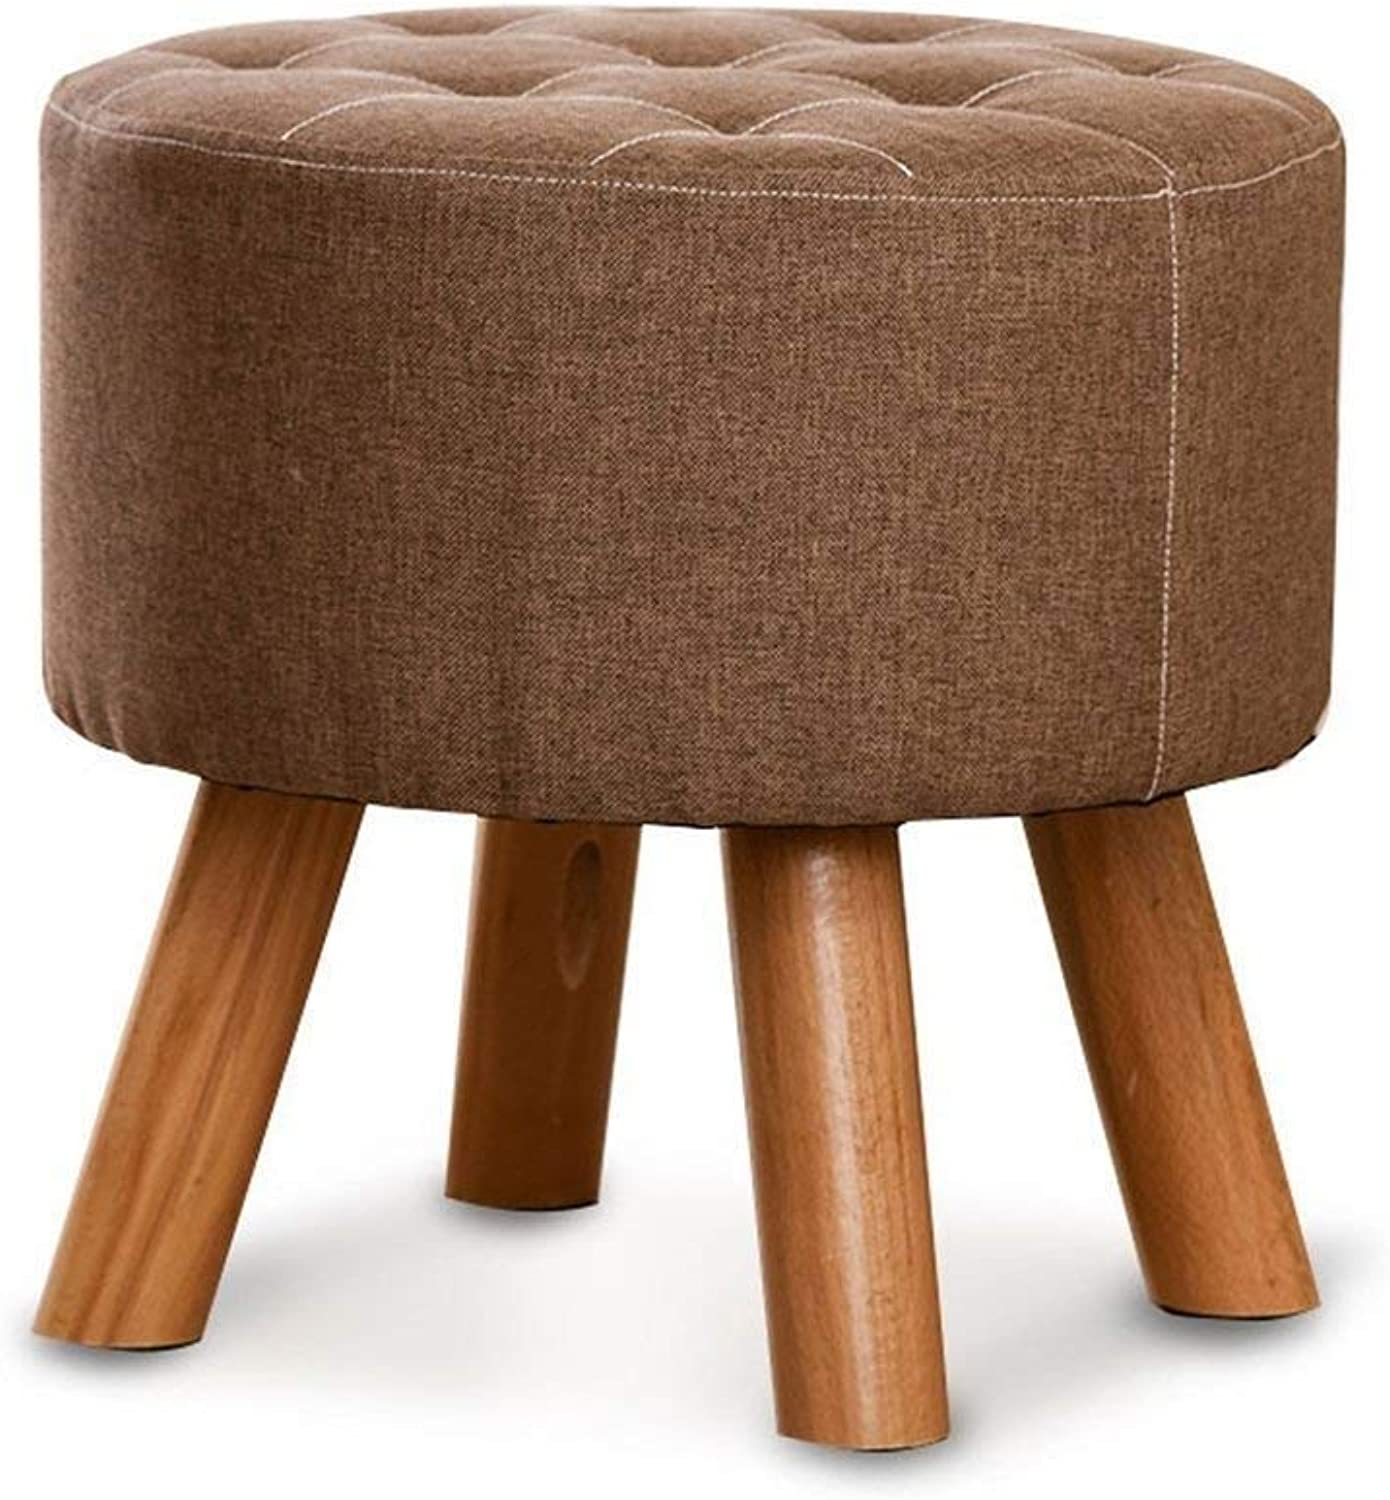 European Chair Fabric Sofa Stool Solid Wood Stool Makeup Stool shoes Bench GMING (color   B)